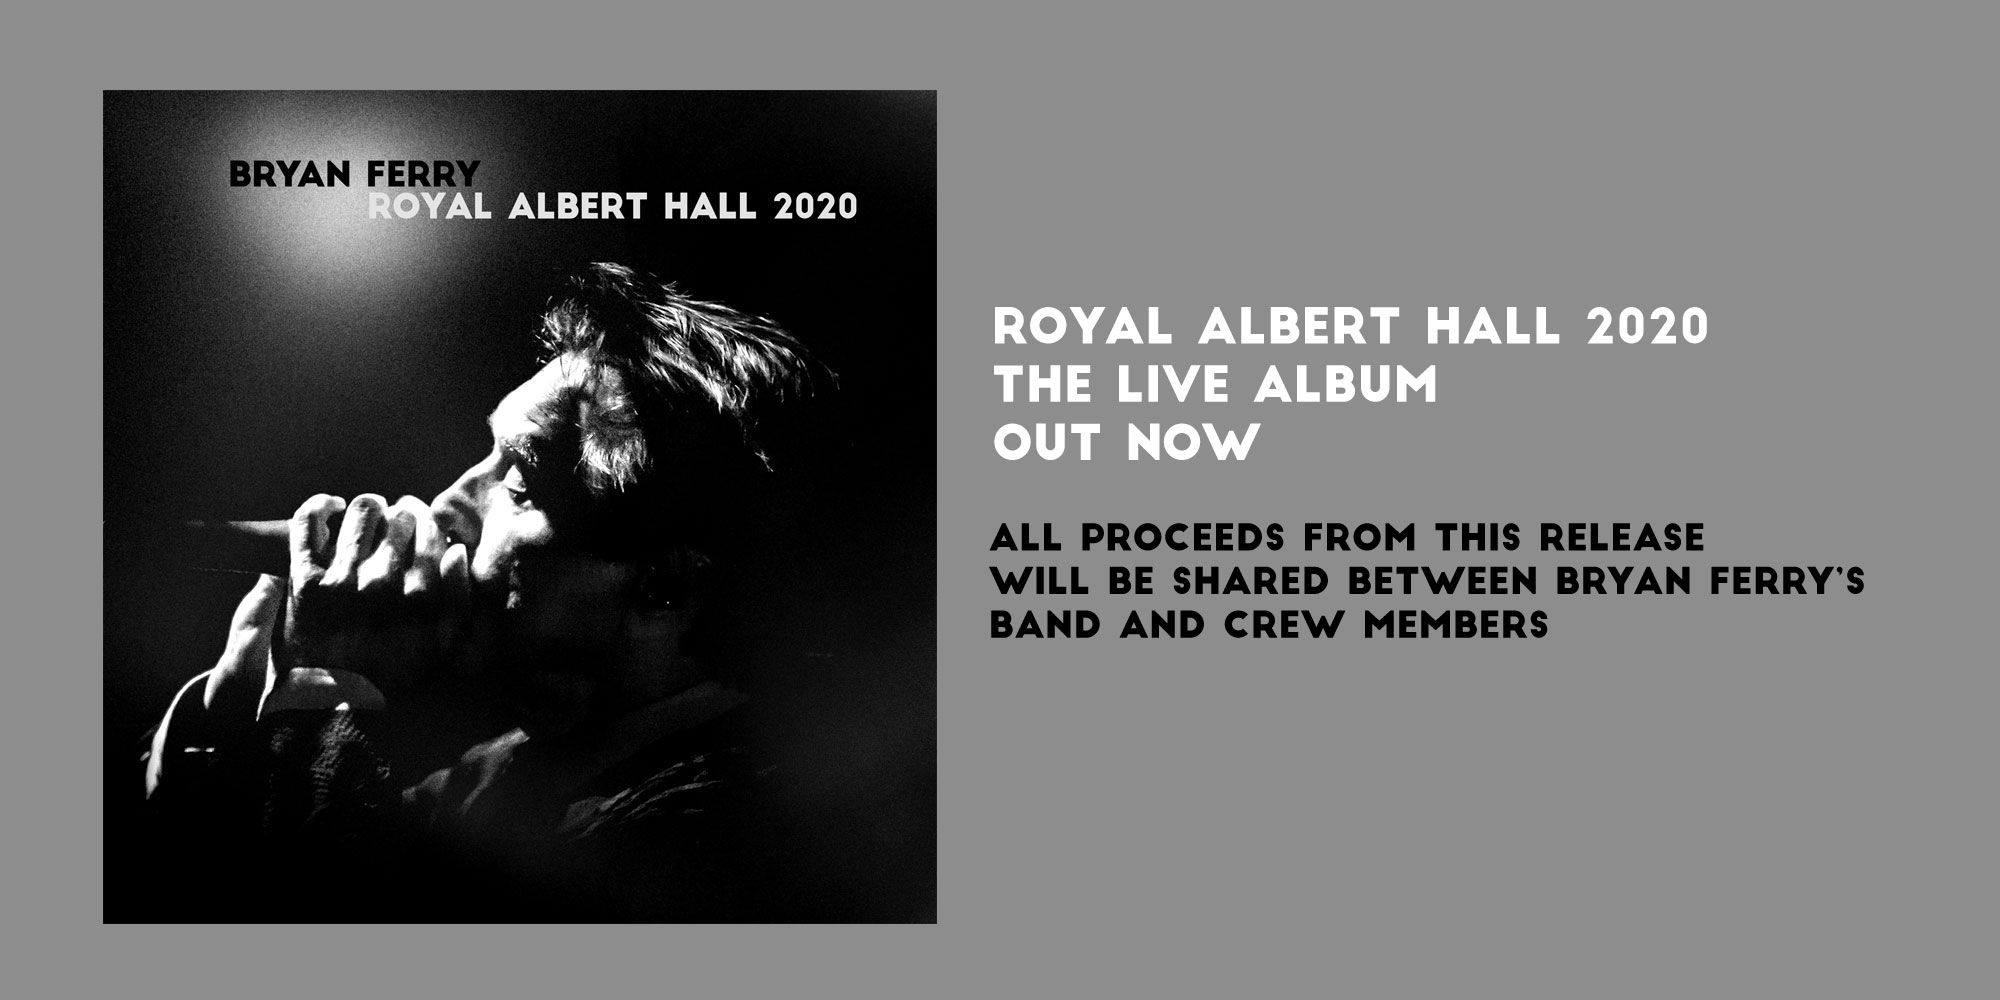 Bryan Ferry Live Album to support Band and Crew Out Now